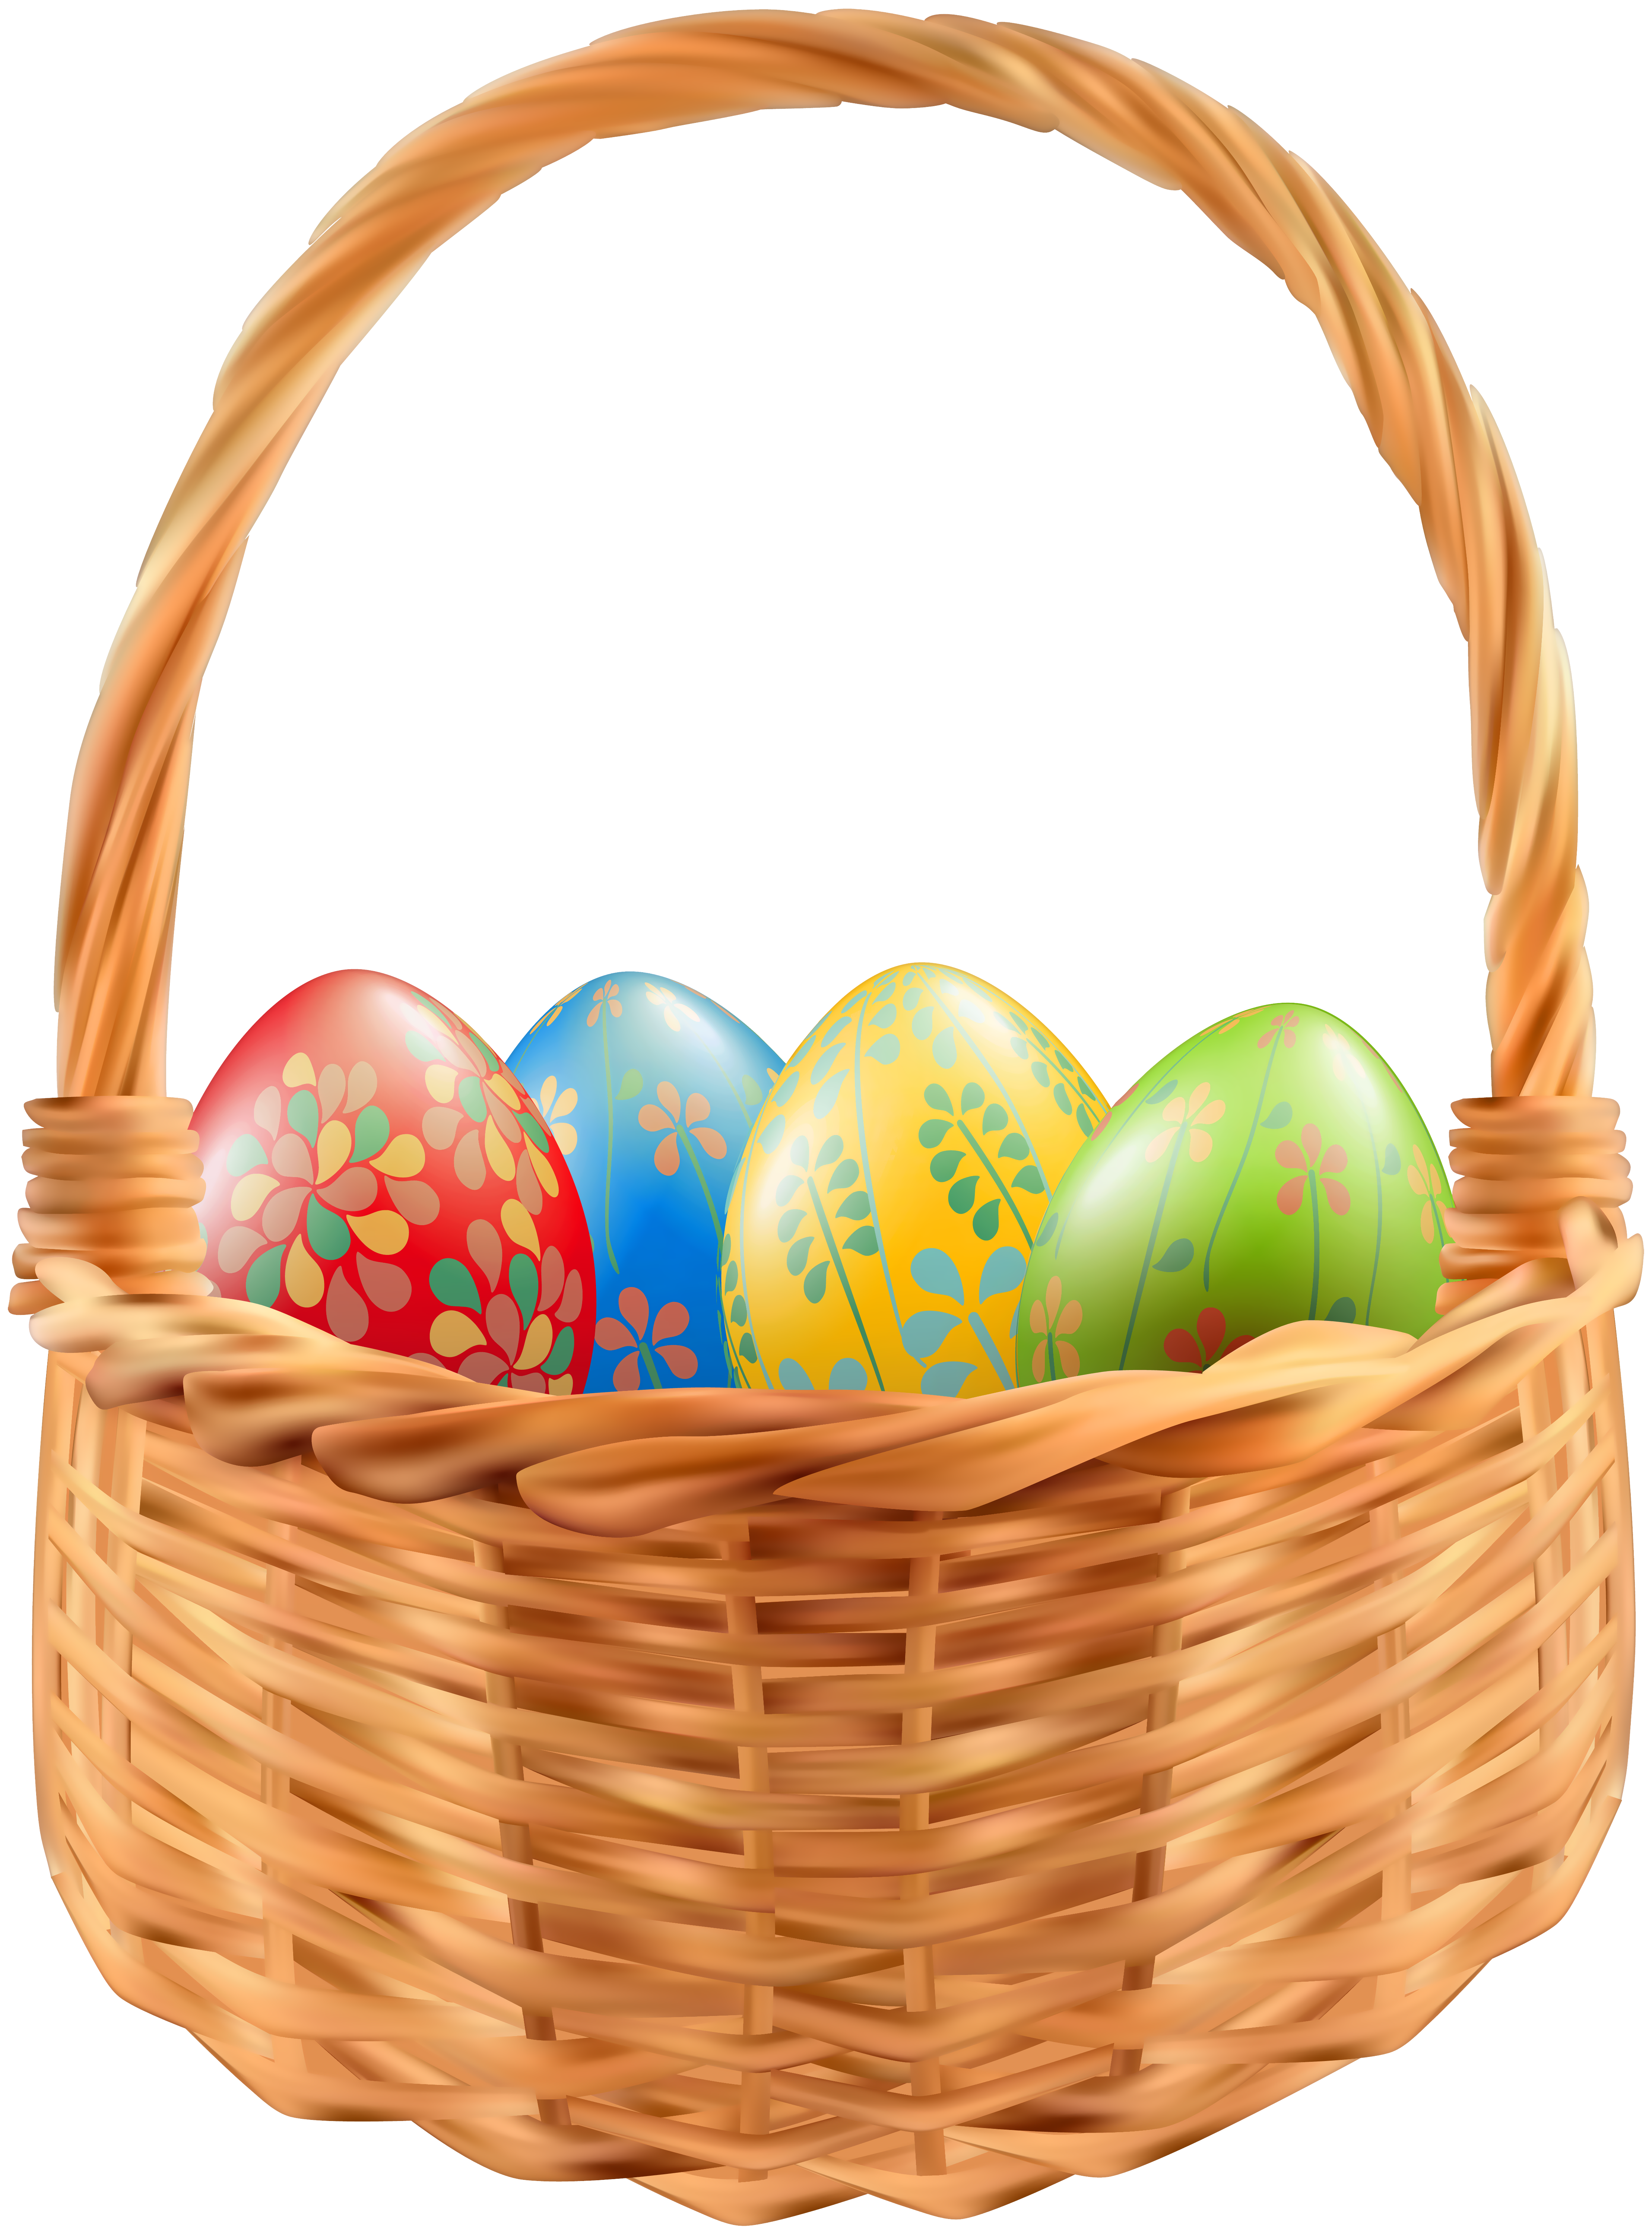 Easter png clip art. Water clipart basket